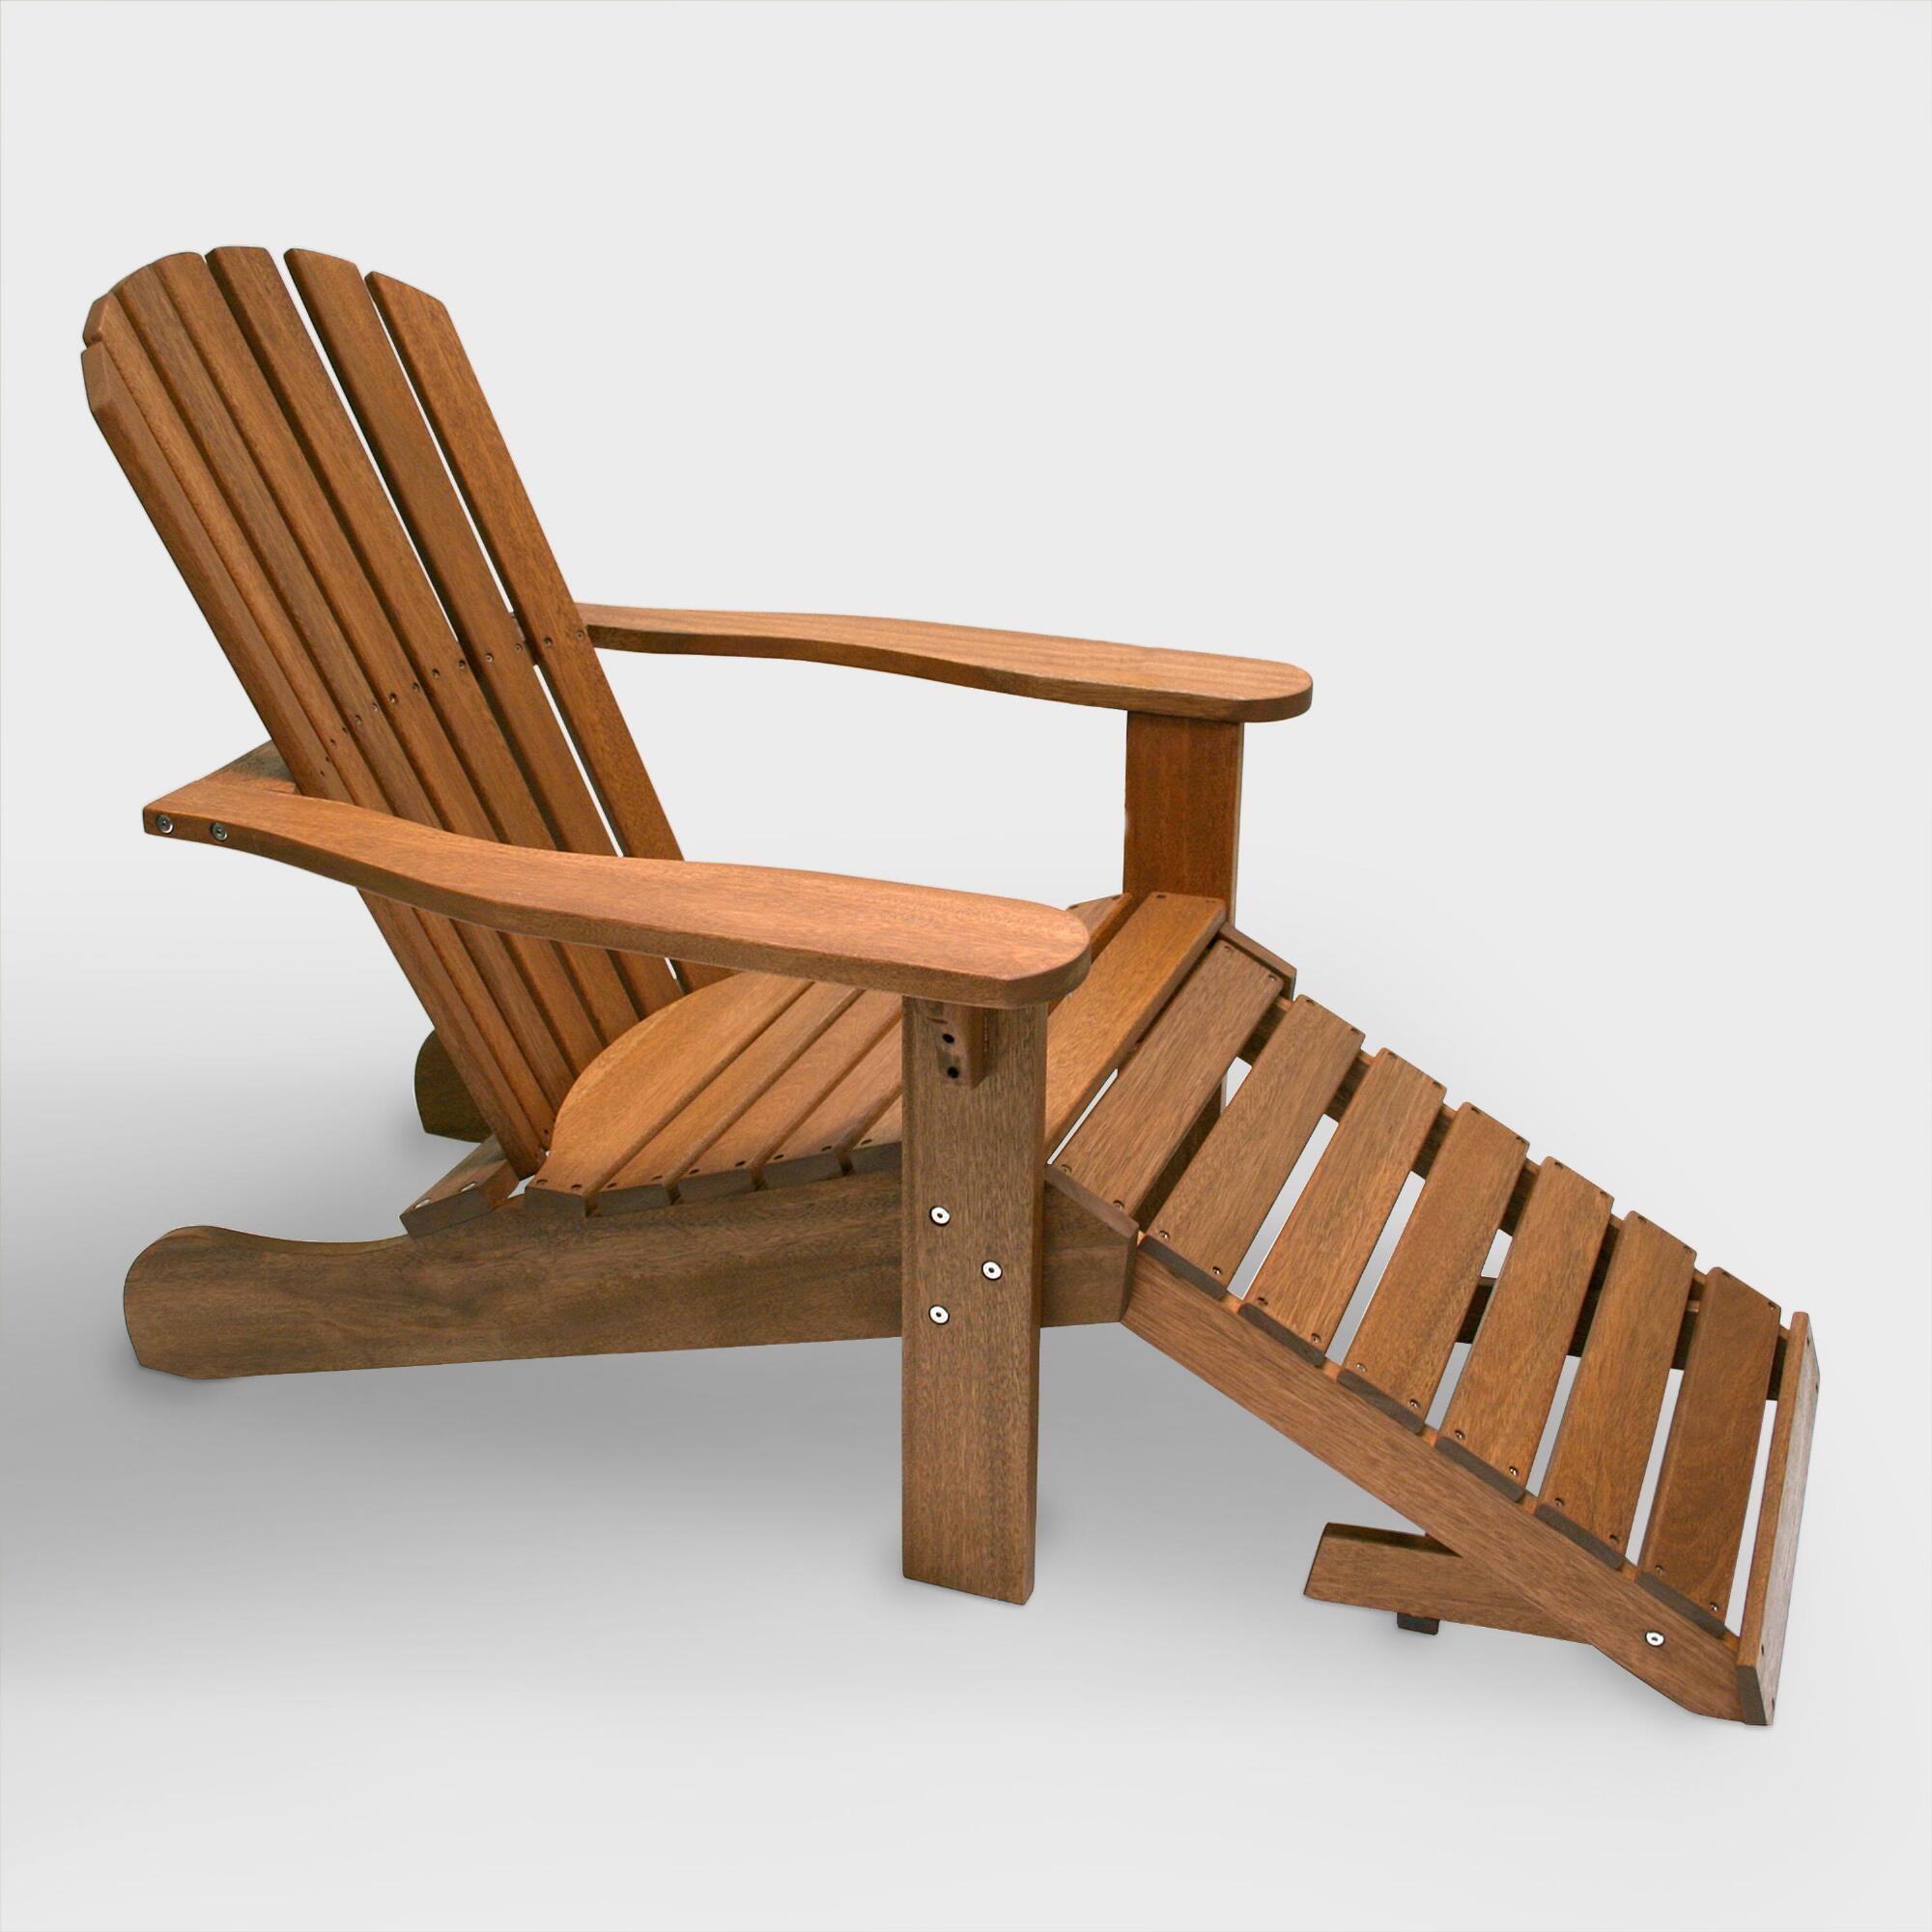 deals wooden chair outdoor l adirondack wood designs stonegate folding w x furniture chairs person unfinished h living